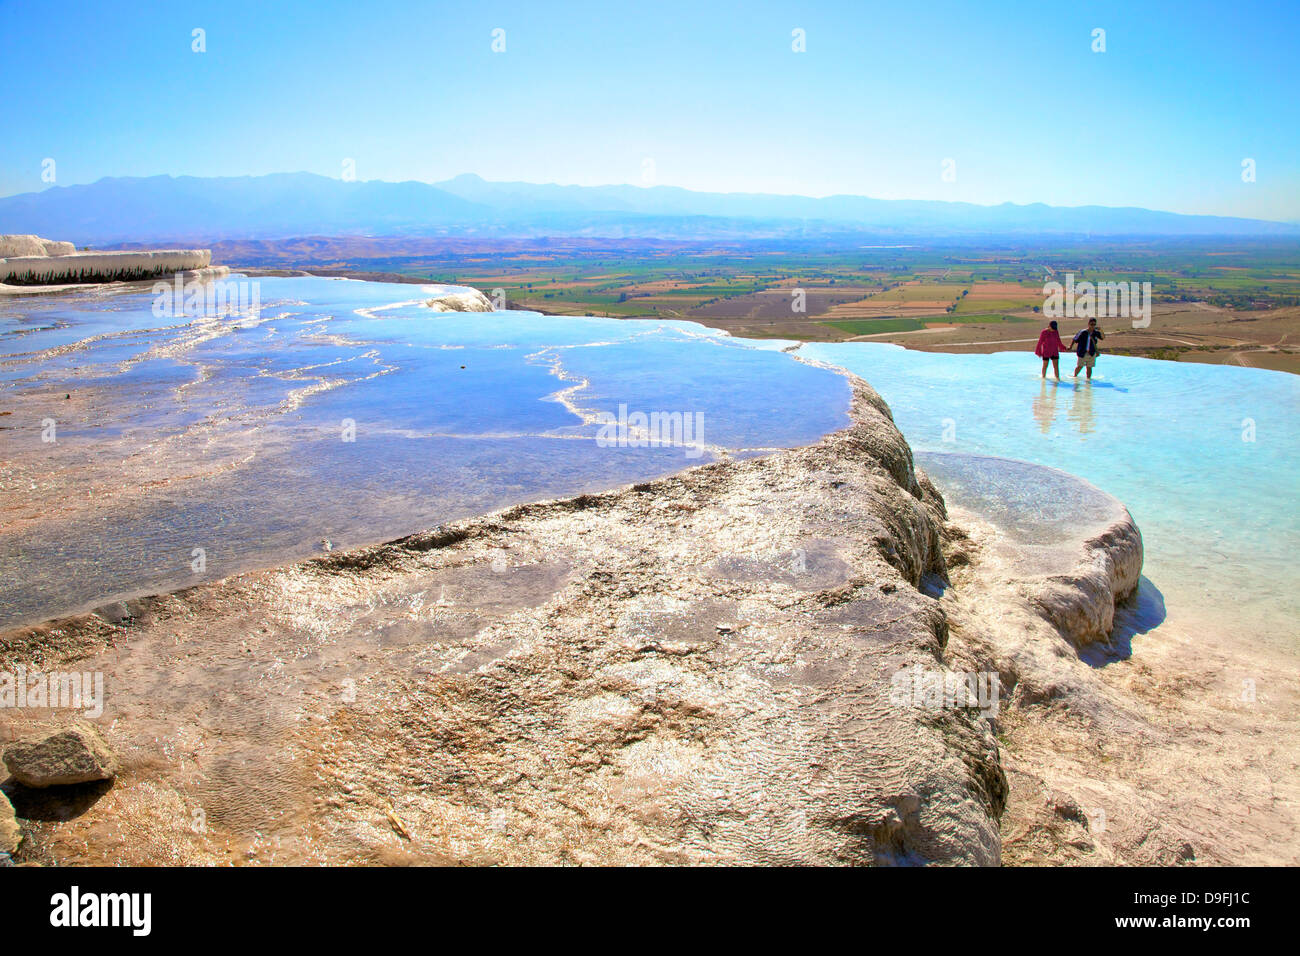 White travertine terraces at Pamukkale, UNESCO World Heritage Site, Anatolia, Turkey Minor, Eurasia - Stock Image